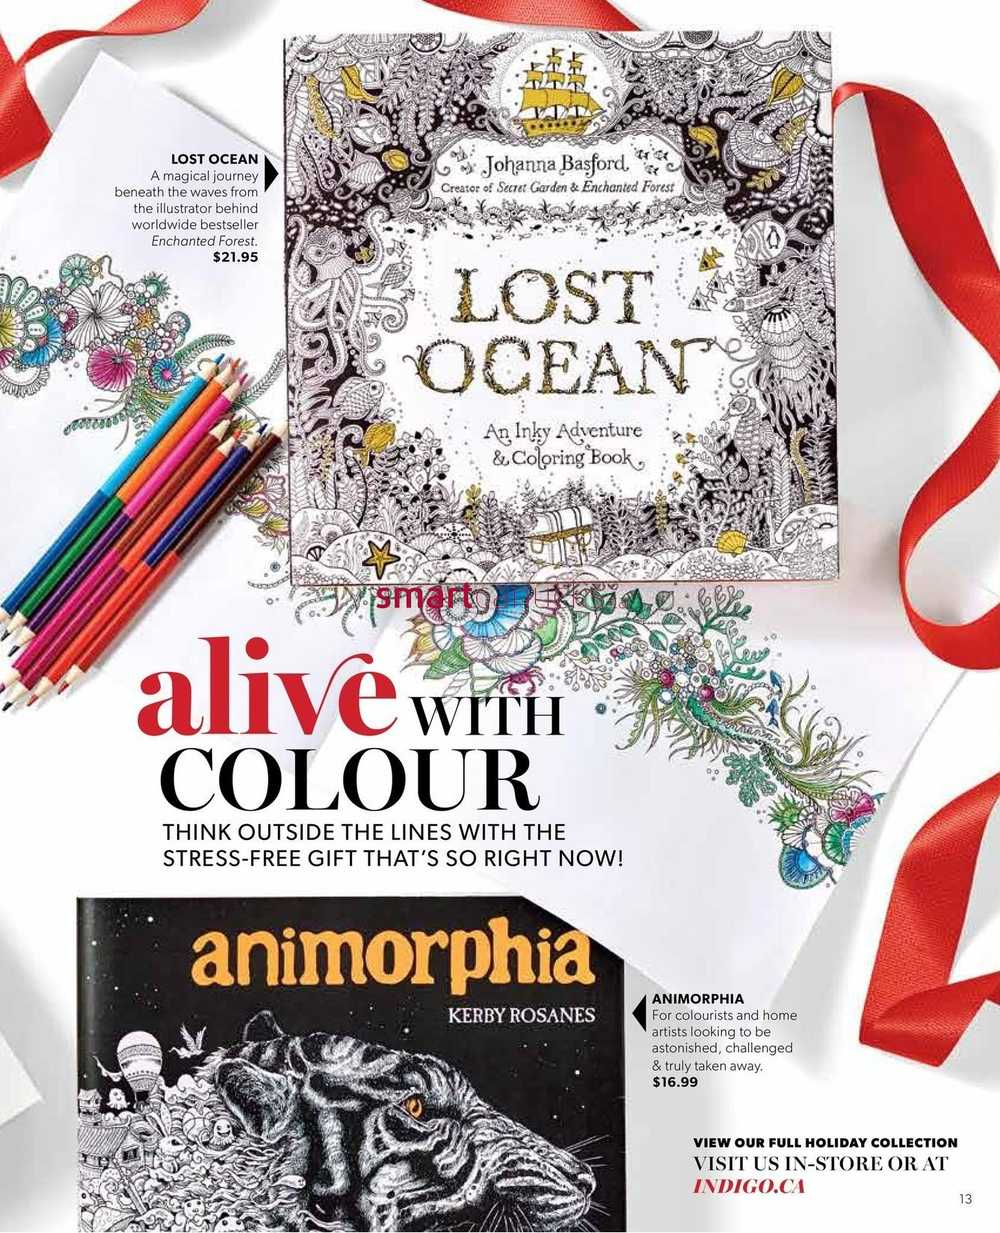 Chapters Indigo Coles 2015 Christmas Gift Guide